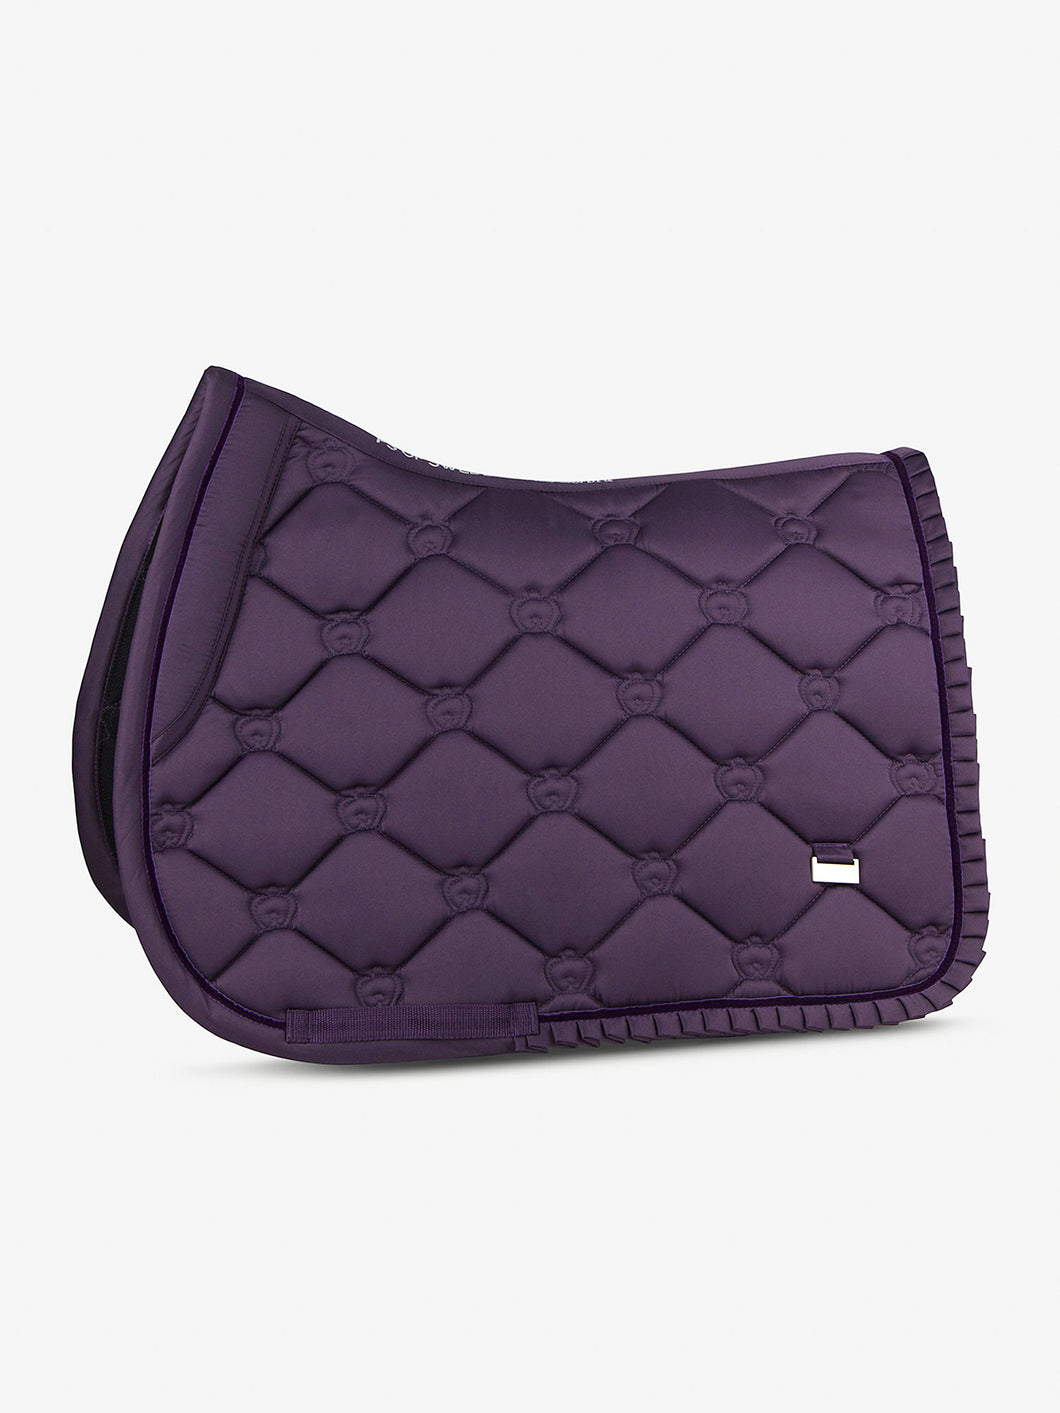 PS of Sweden ''Plum Ruffle'' General Purpose Saddle Cloth